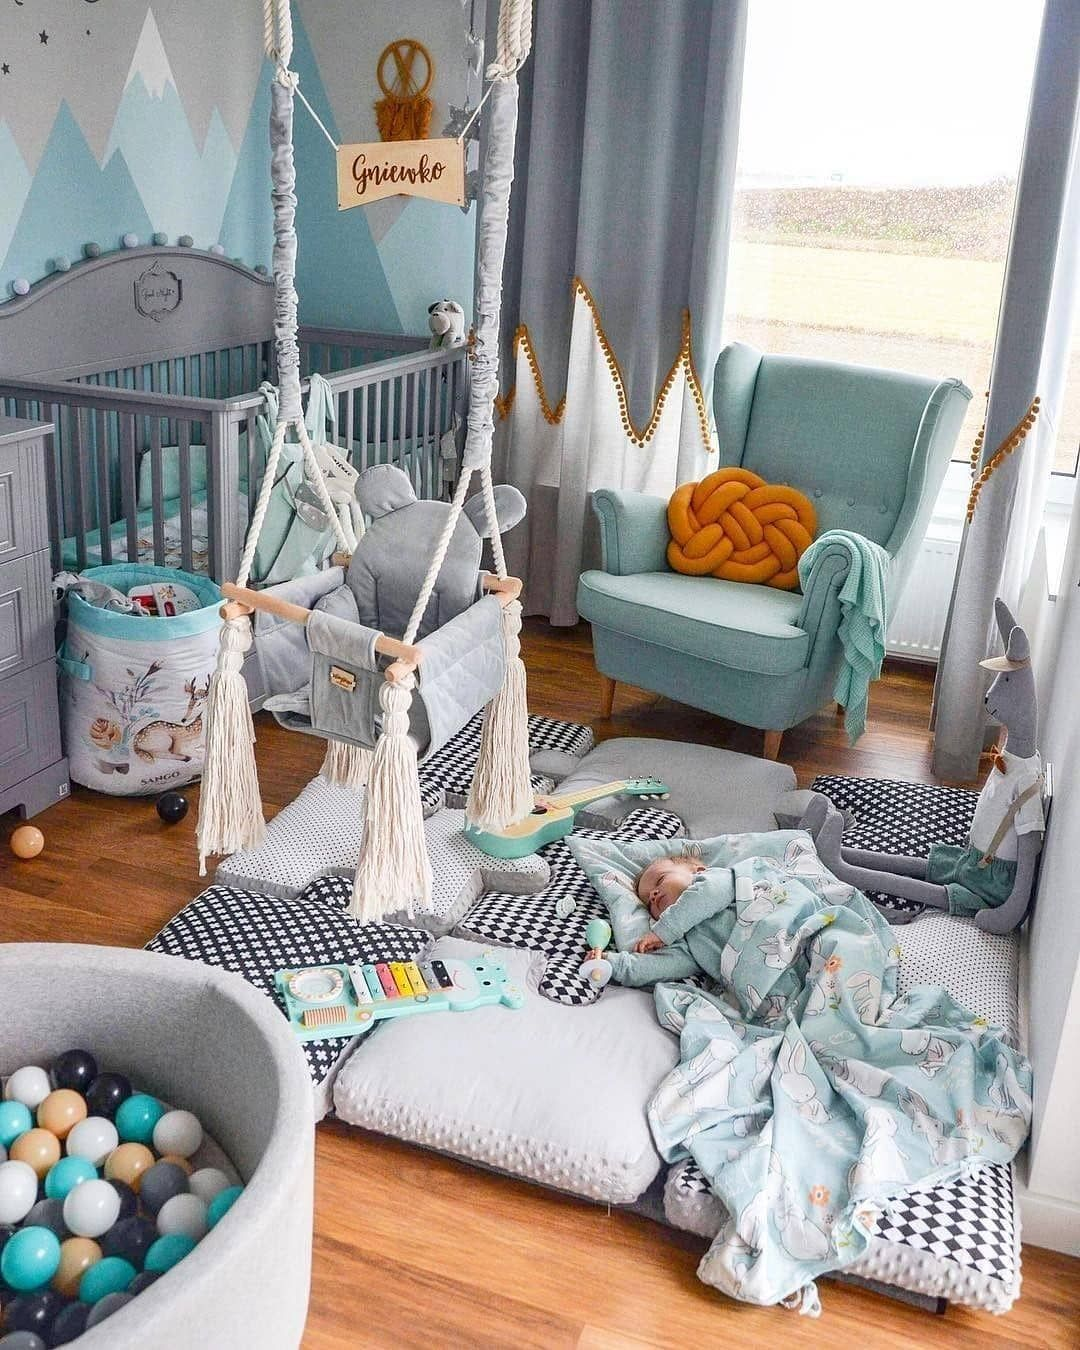 3 371 Likes 18 Comments Mobebe Baby Kids Moms Mobebeshopping On Instagram Wish To Have Baby Boy Room Decor Baby Boy Room Nursery Budget Baby Room Baby boy bedroom sets